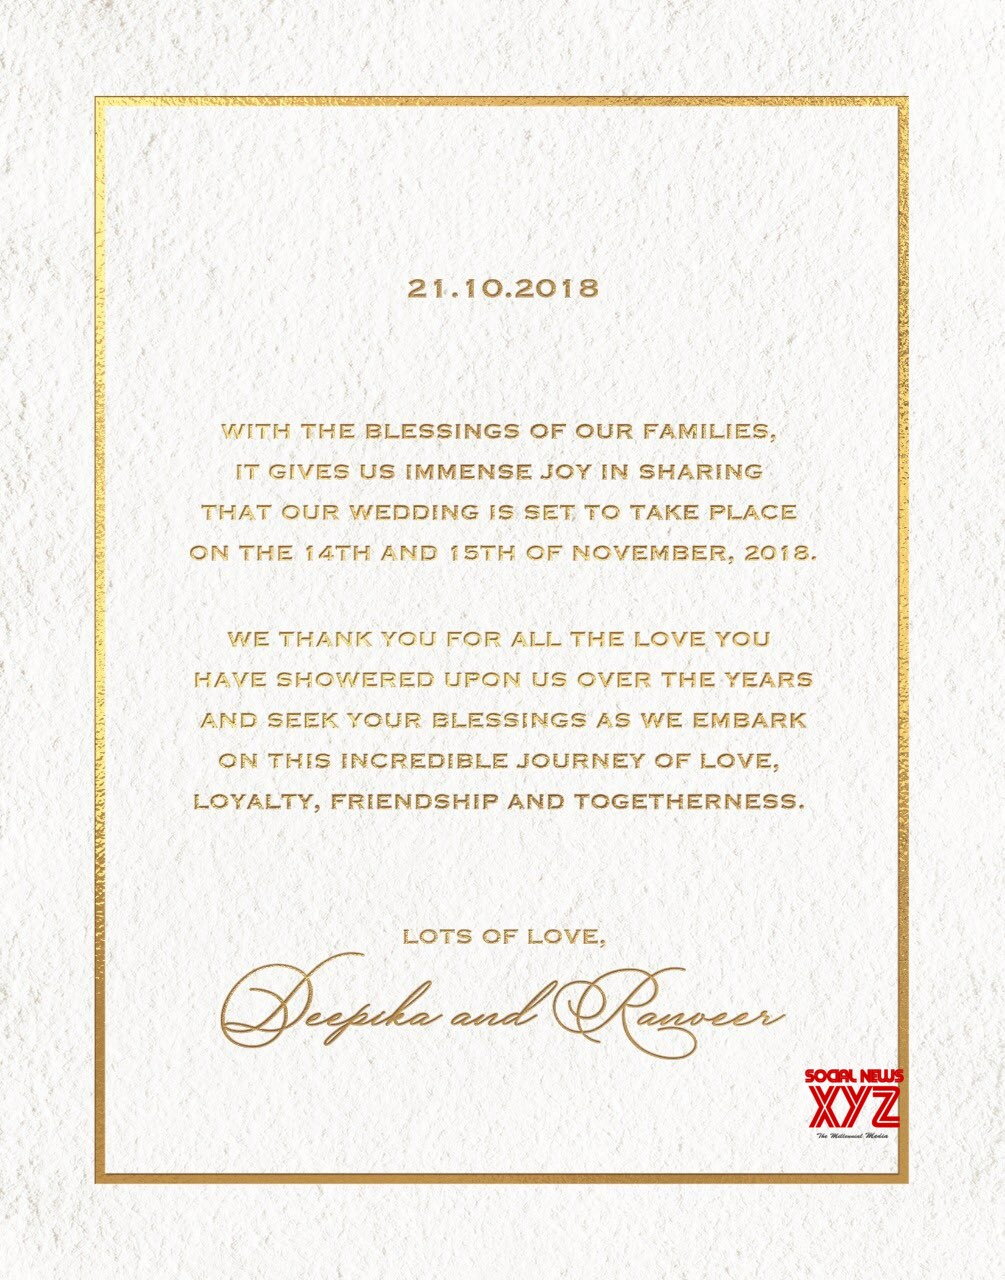 Deepika Padukone And Ranveer Singh Wedding Invitation ...